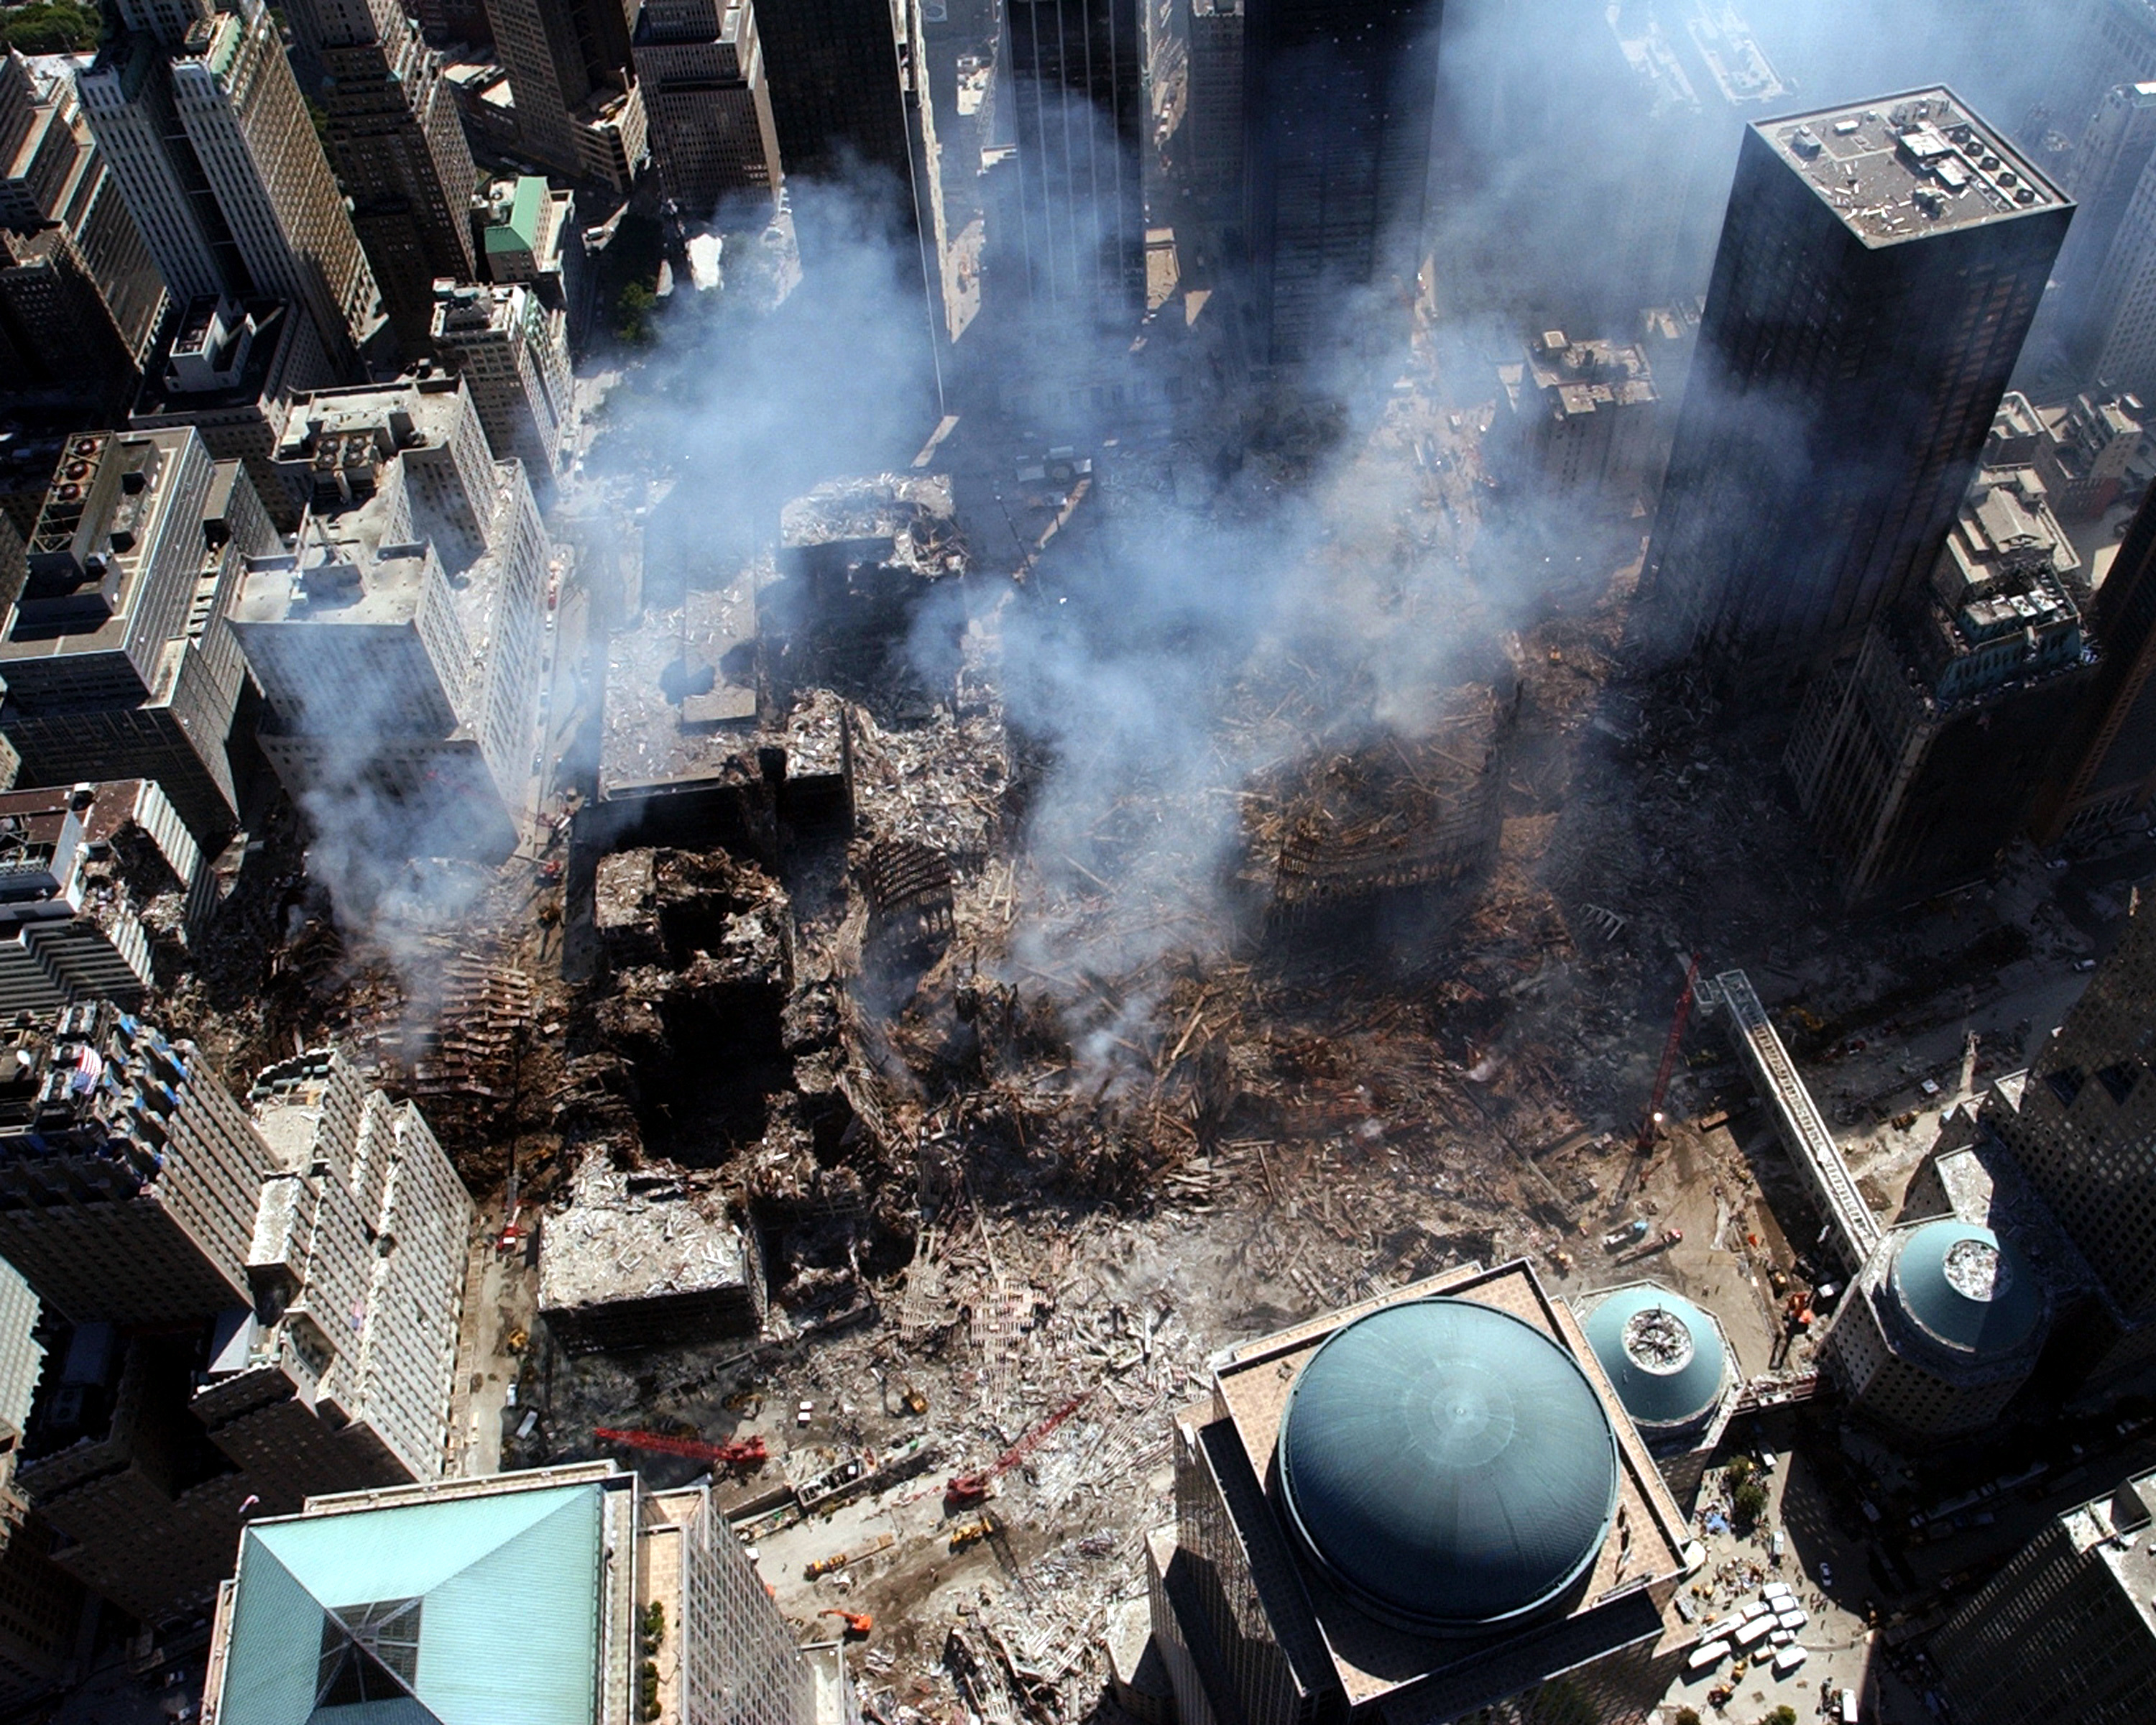 http://upload.wikimedia.org/wikipedia/commons/8/8f/US_Navy_010917-N-7479T-508_World_Trade_Center_collapse.jpg